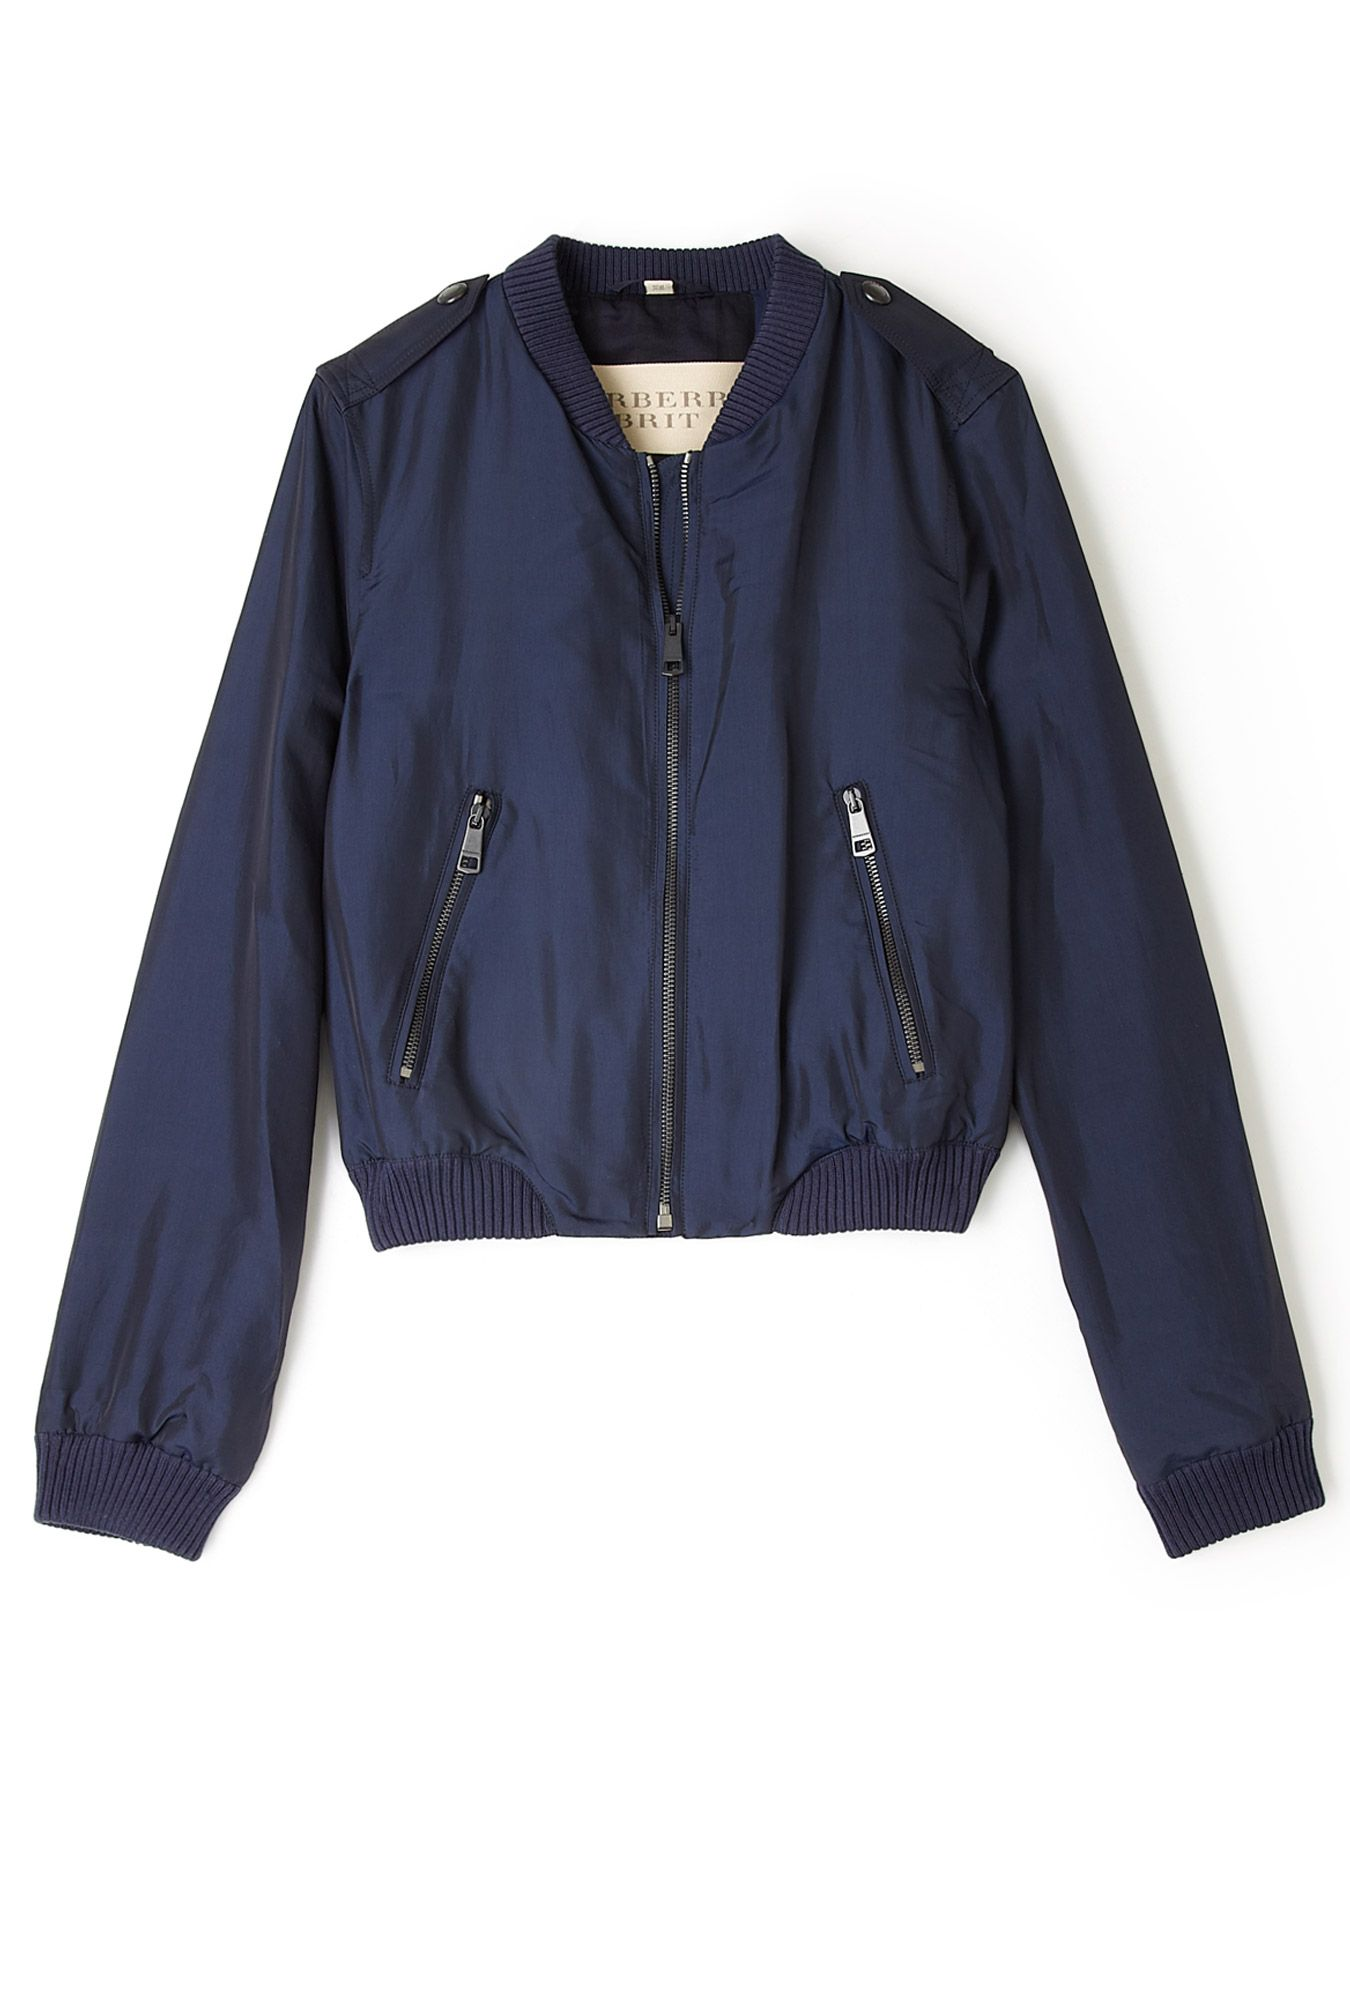 Navy Silk Bomber Jackets By Burberry Brit Stylish Jackets Jackets Silk Bomber Jacket [ 2000 x 1350 Pixel ]